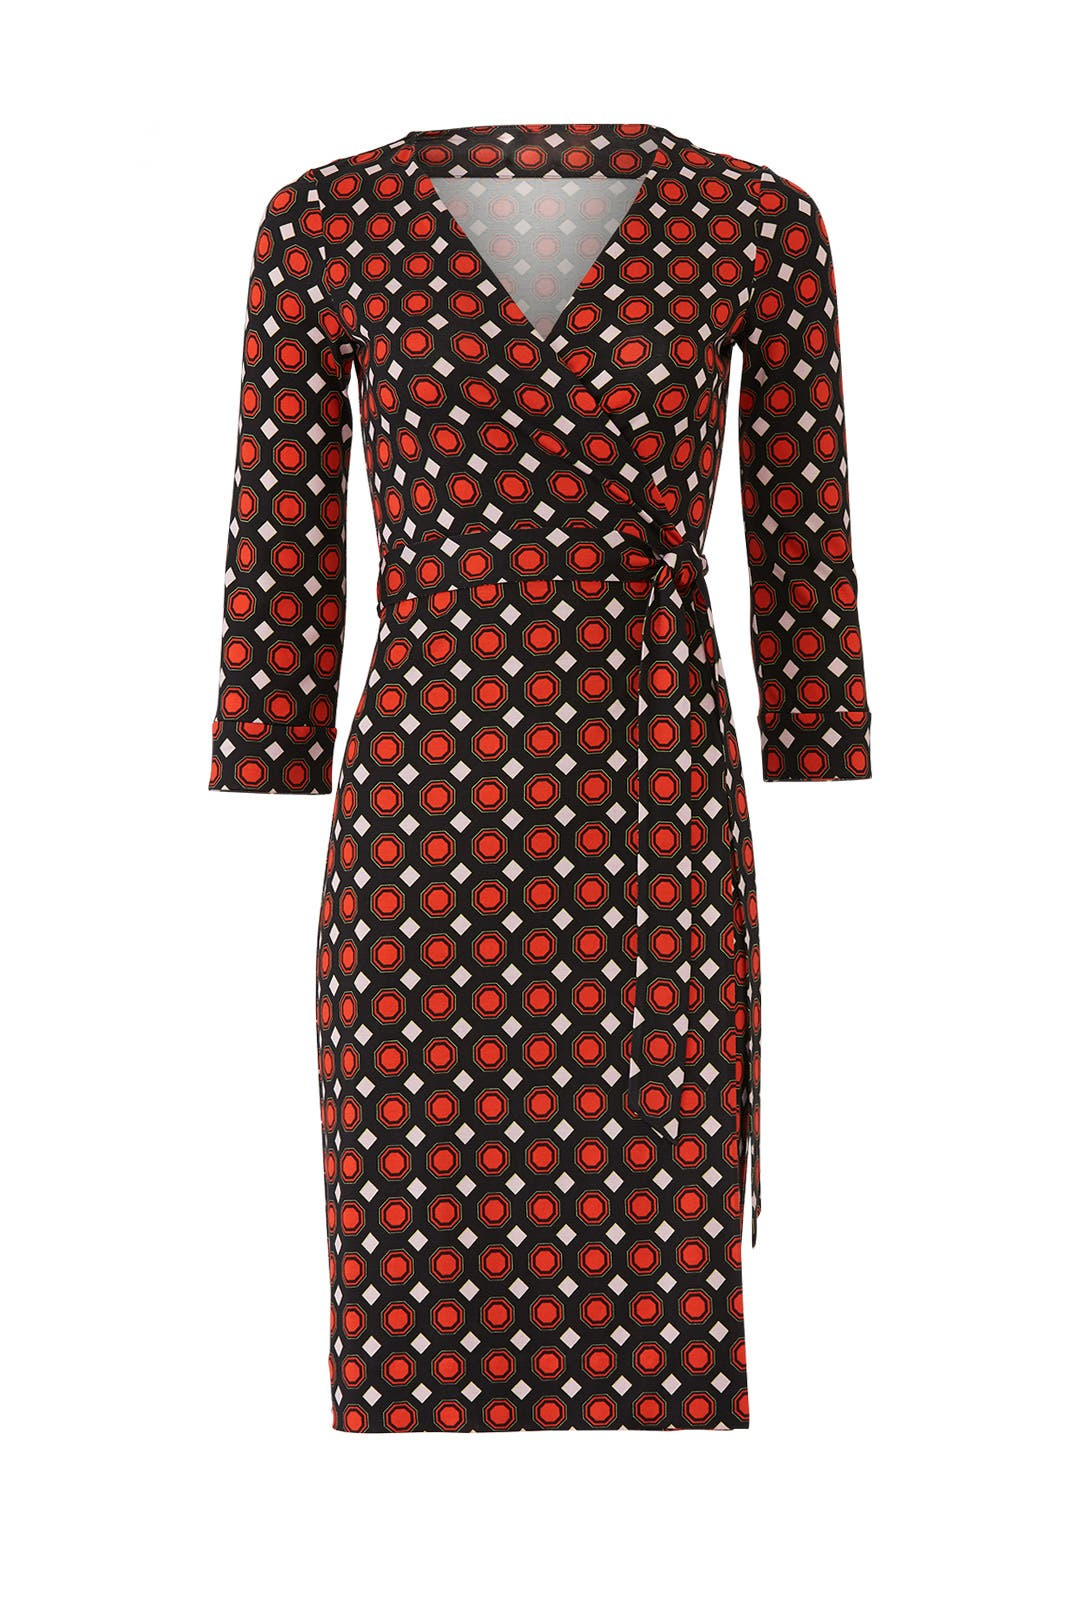 7936f4fbab315 Diane von Furstenberg. Read Reviews. New Julian Wrap Dress